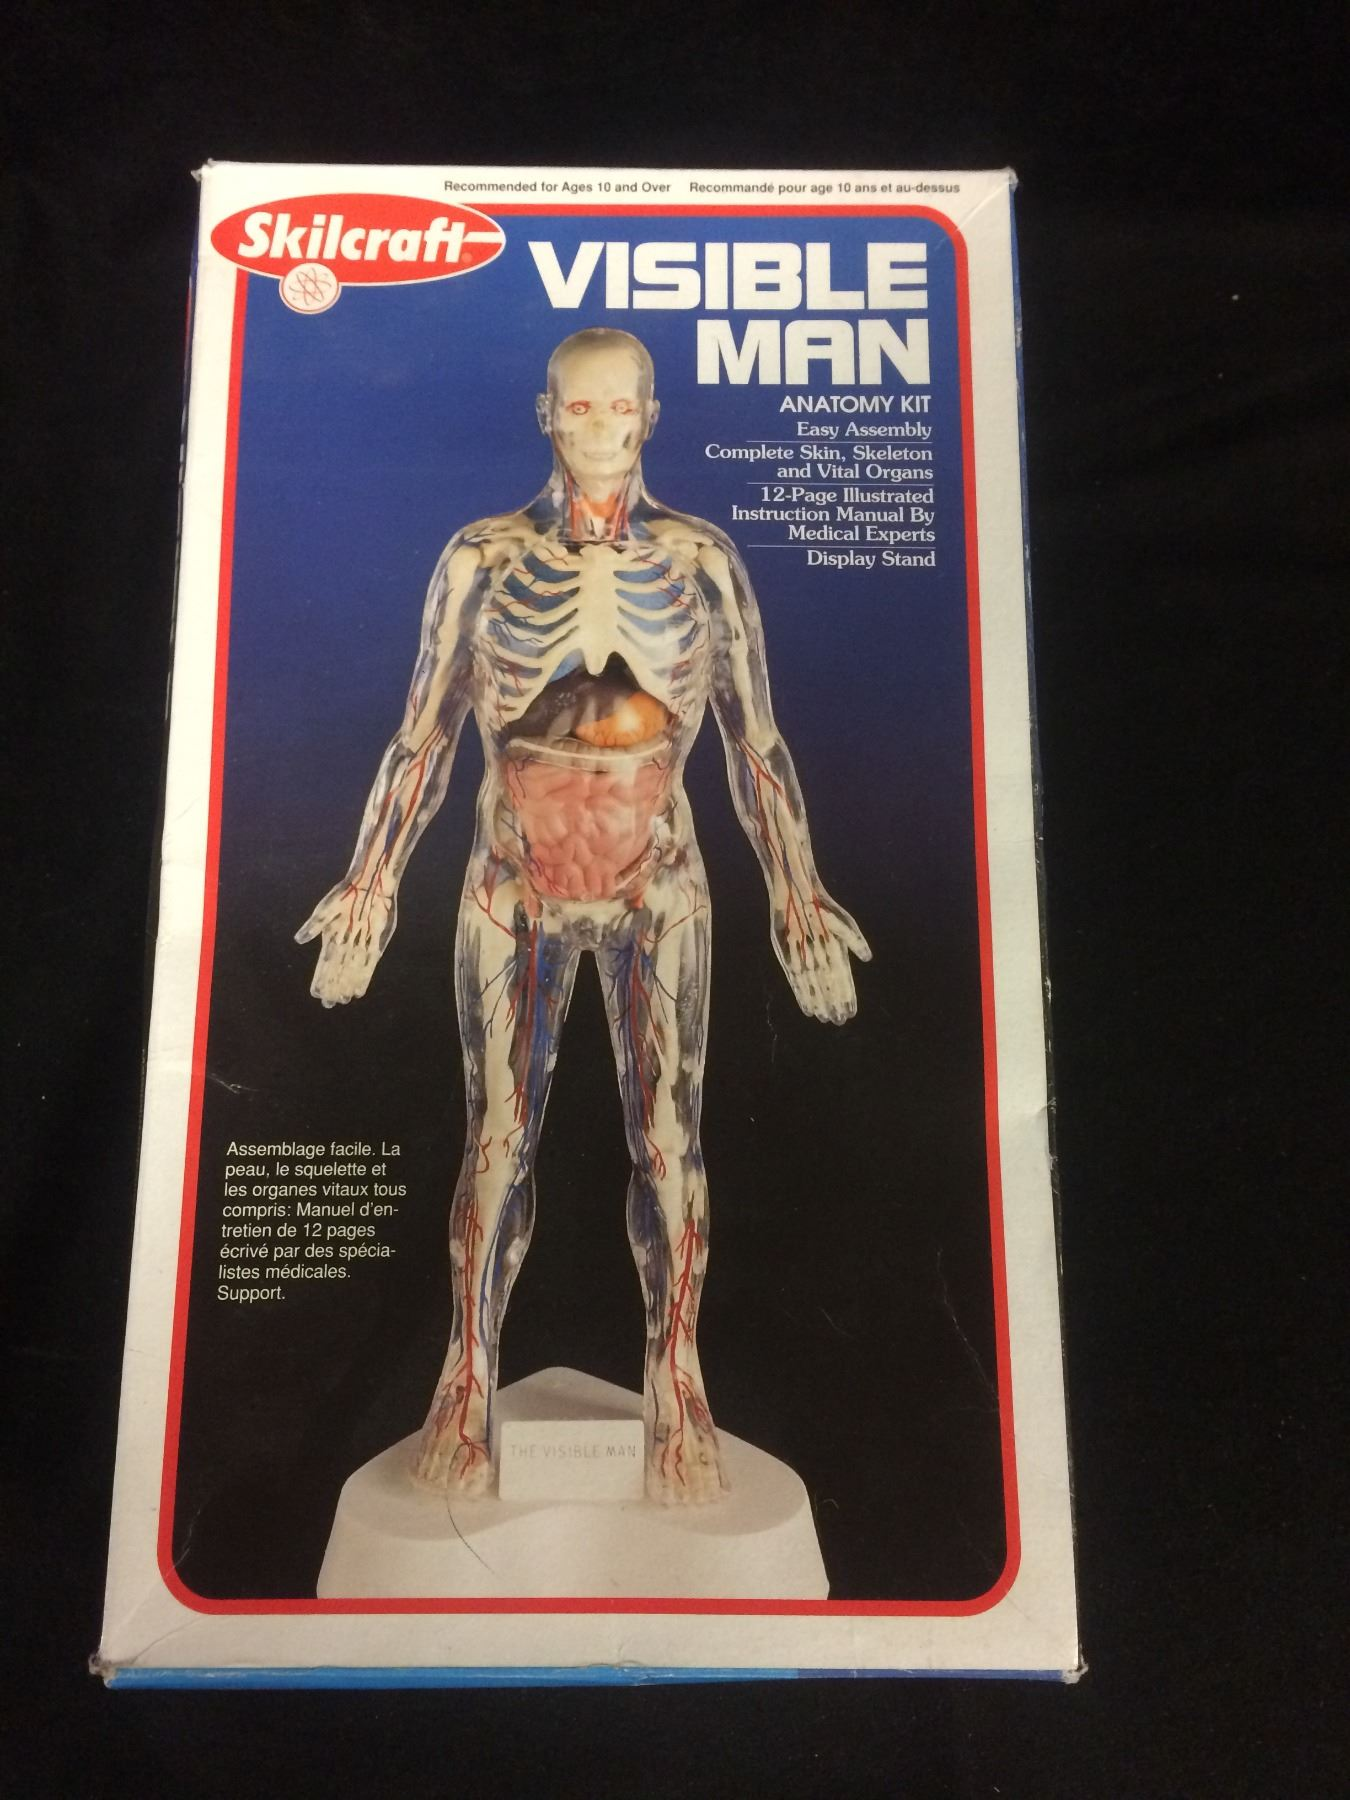 SKILCRAFT VISIBLE MAN ANATOMY KIT IN BOX